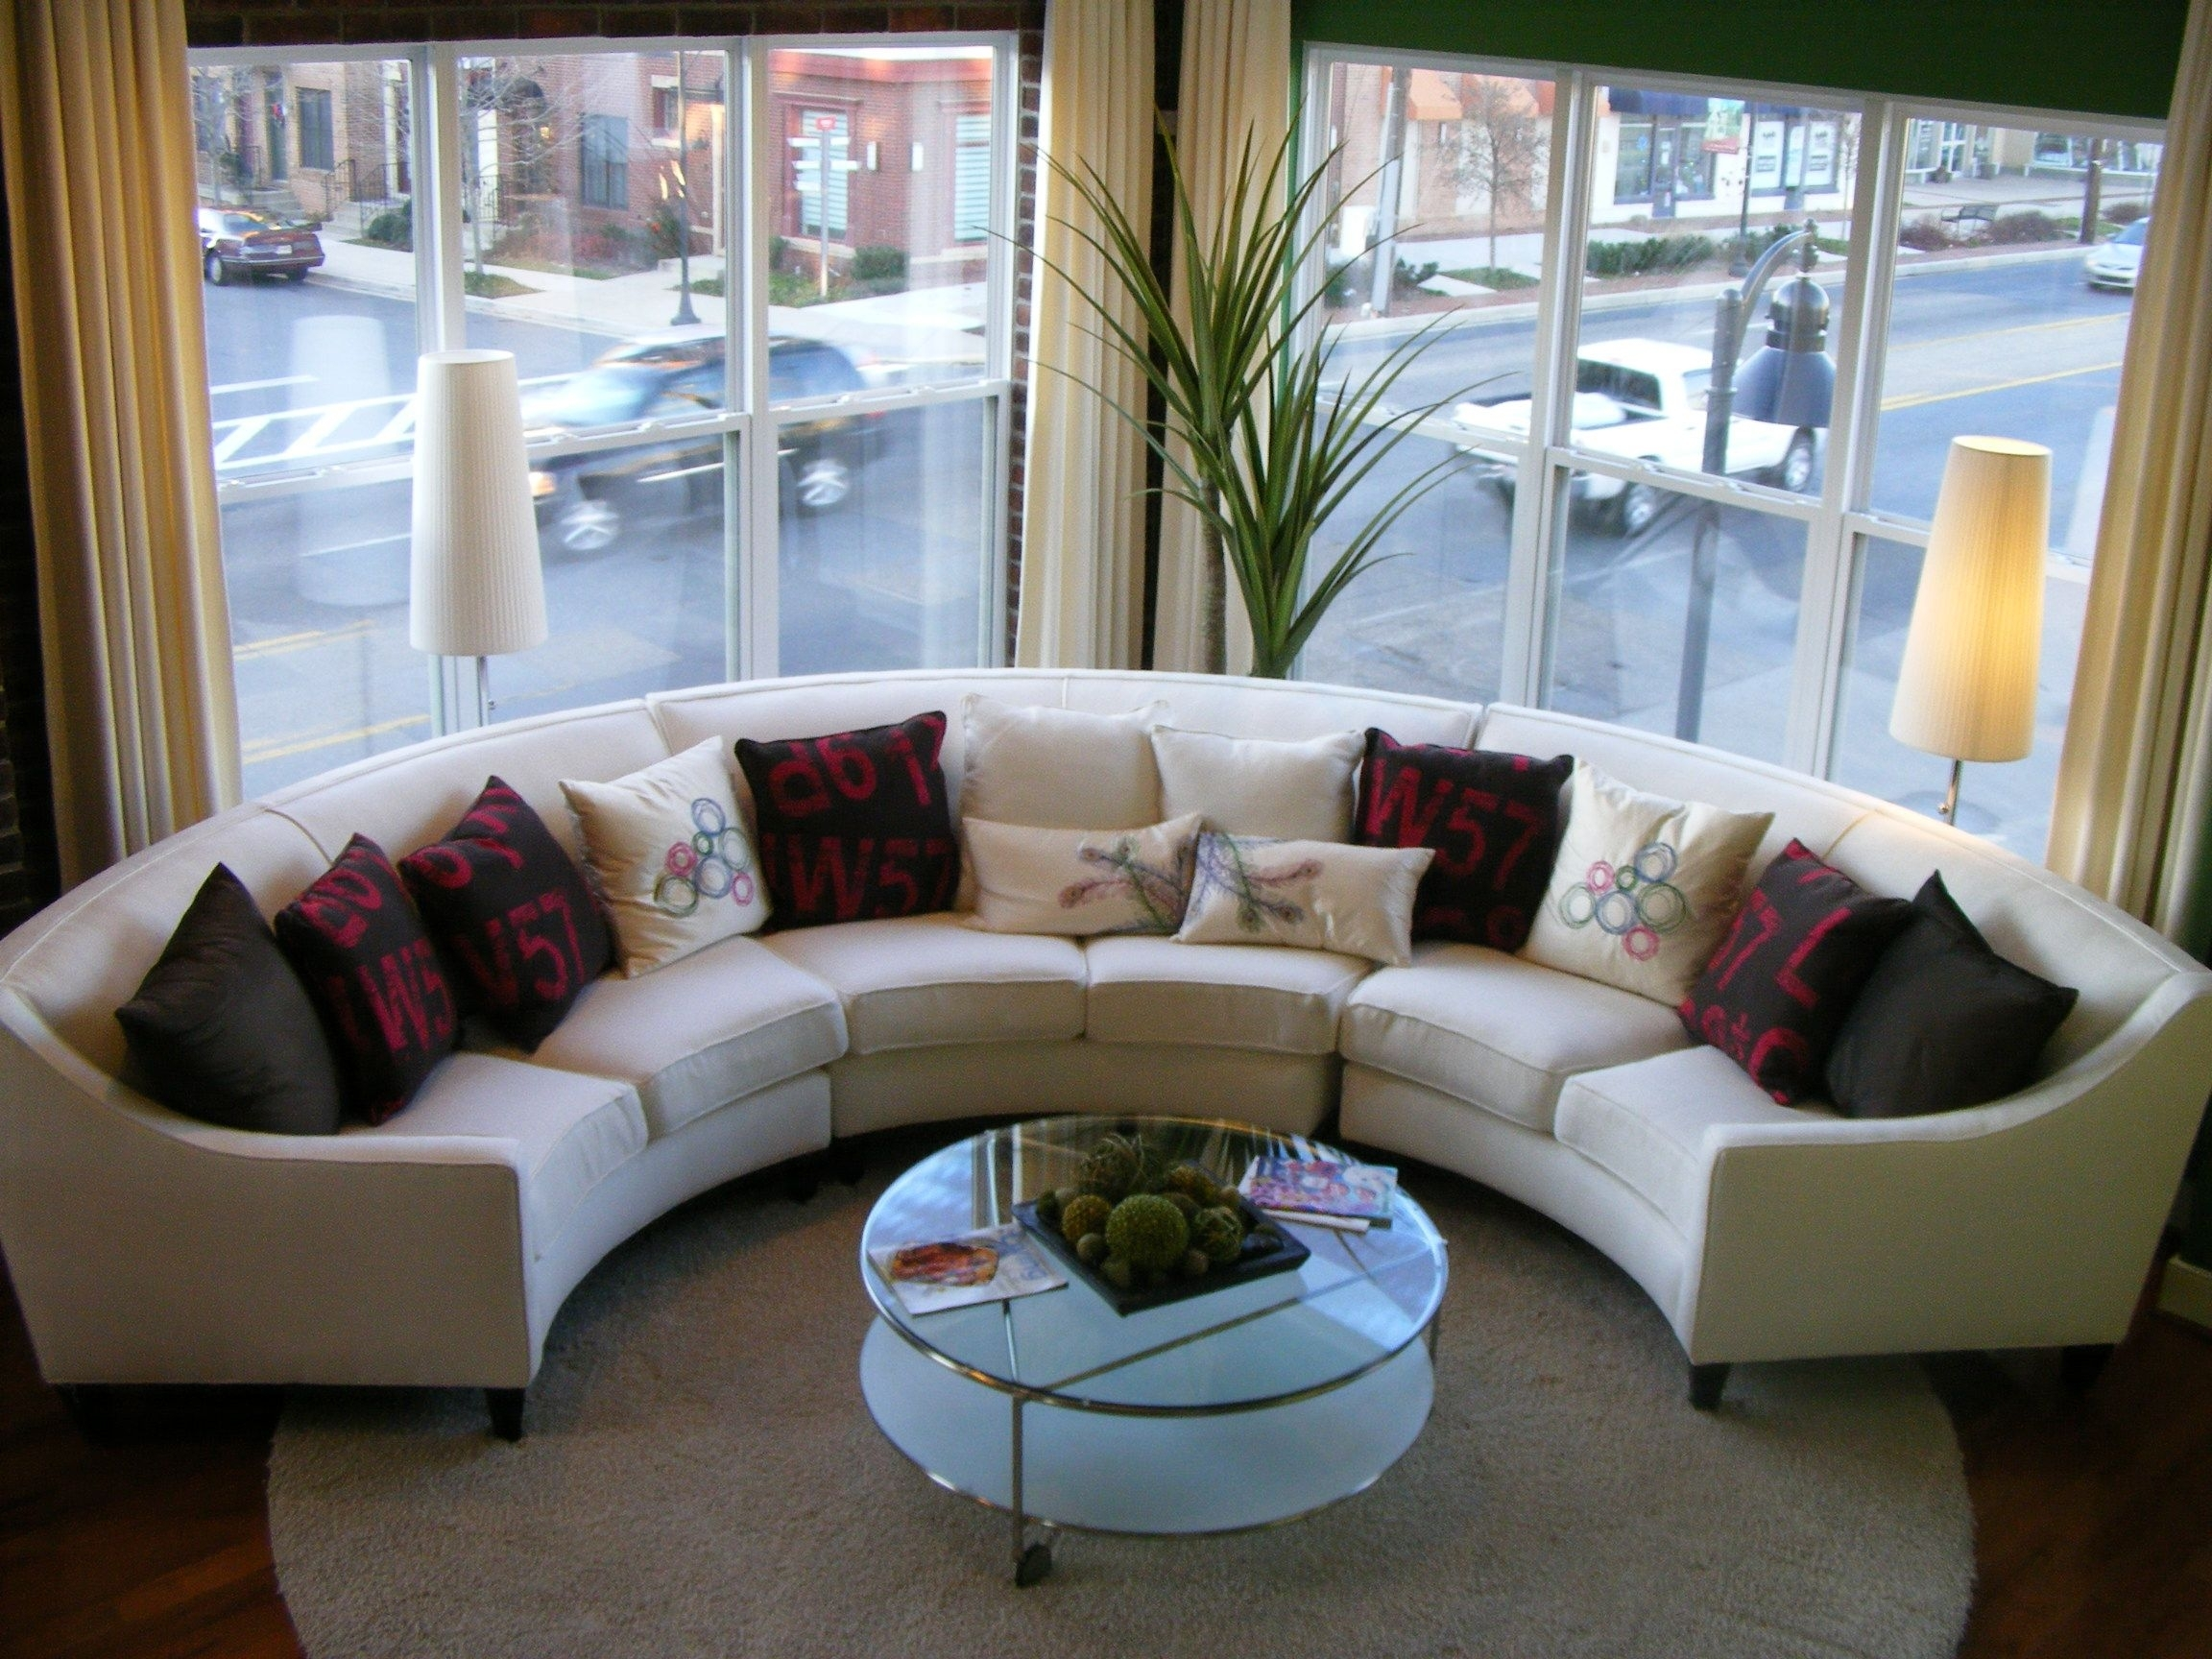 Curved Couches | Round Sofa Sectional | Curved Sofa Sectionals for Circular Sectional Sofas (Image 1 of 10)